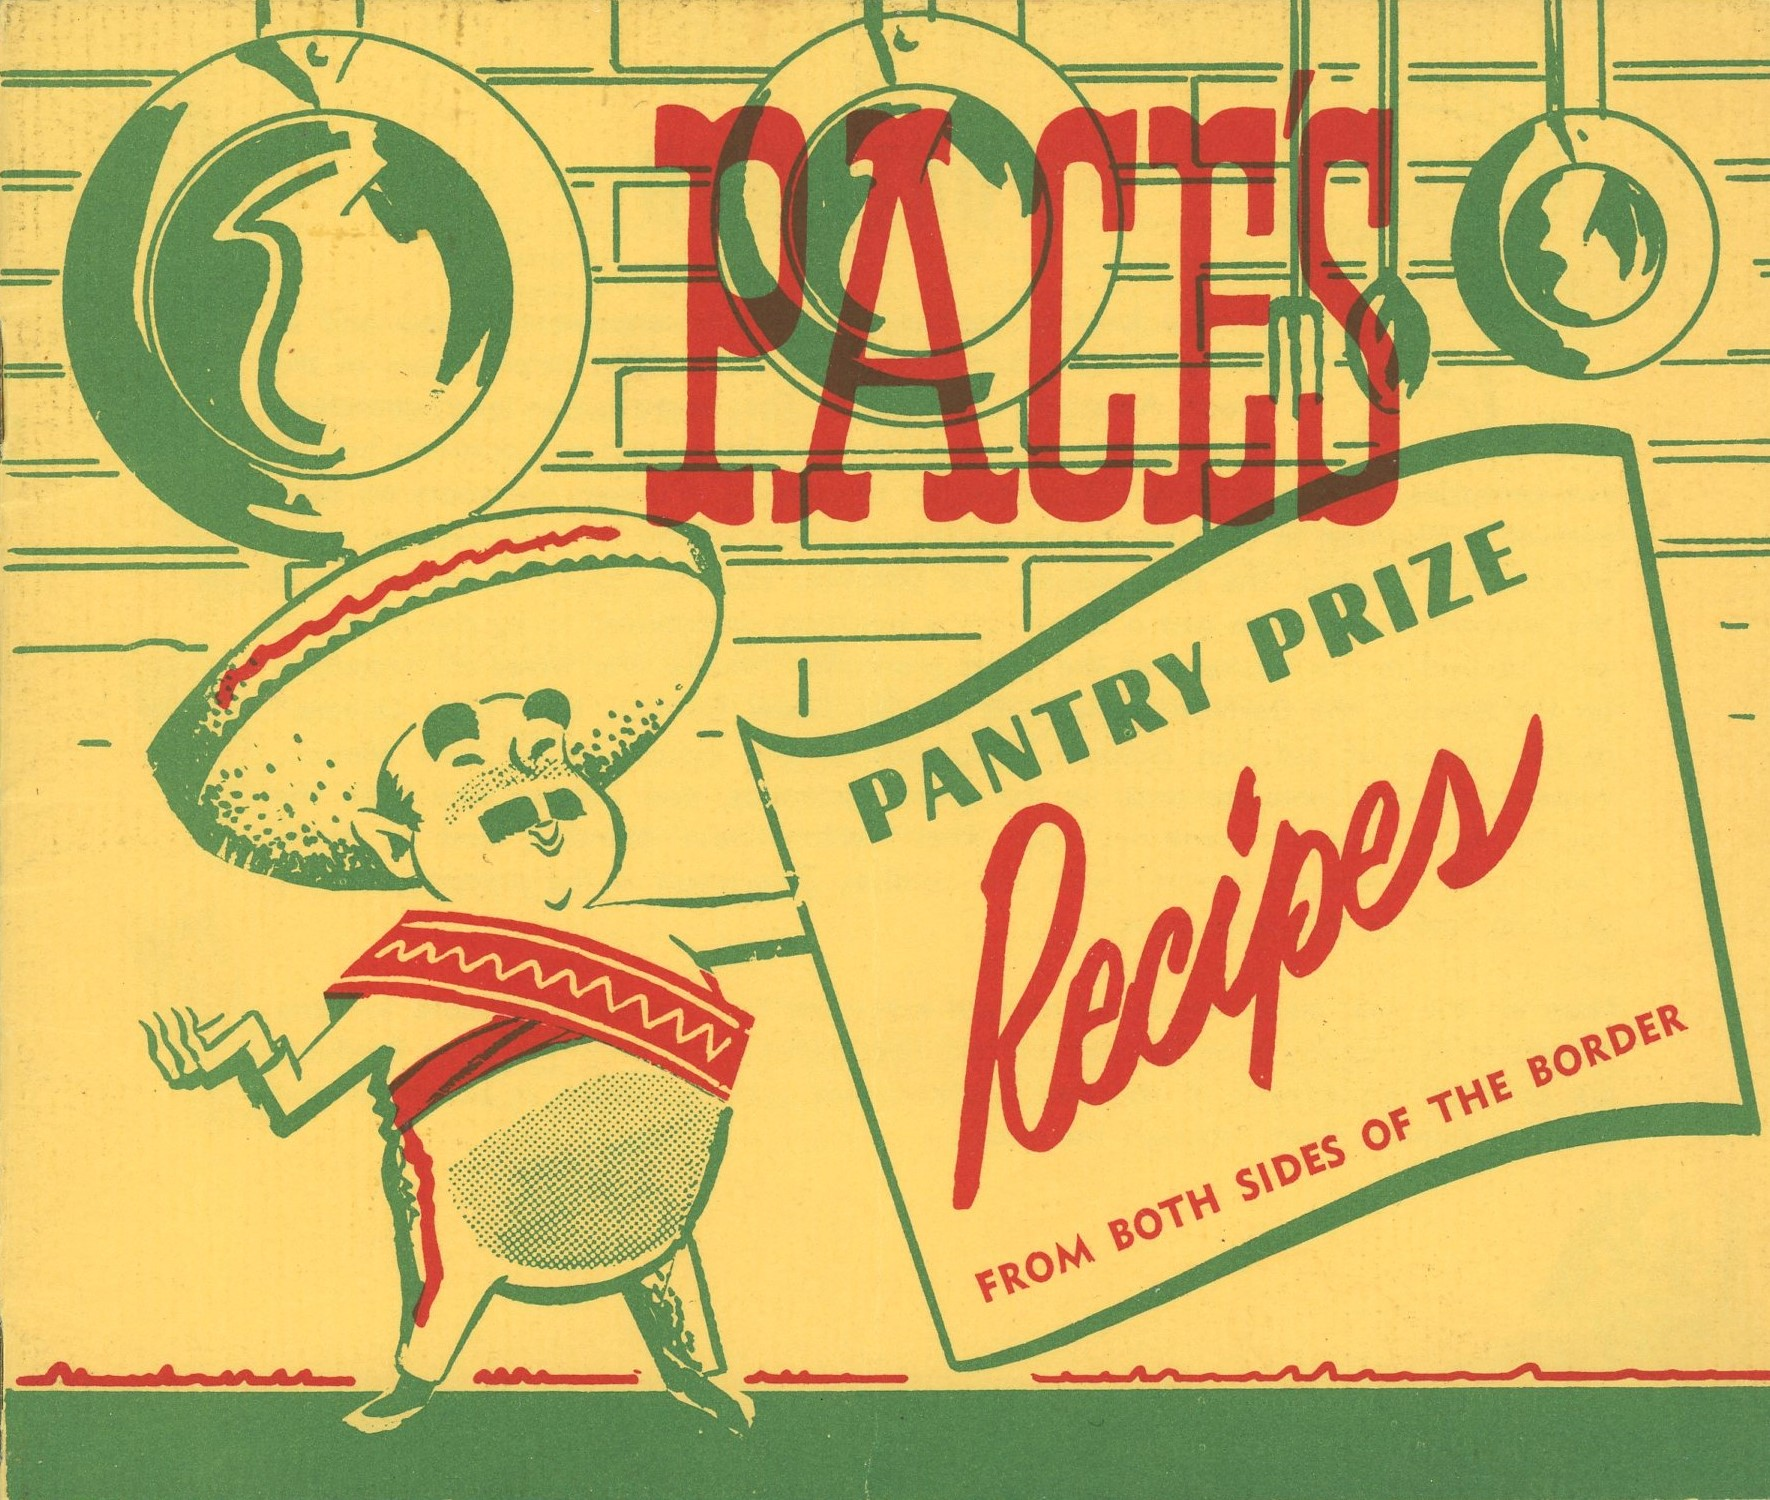 Cover for Paces pantry prize recipes featuring a moustached man in a sombrero